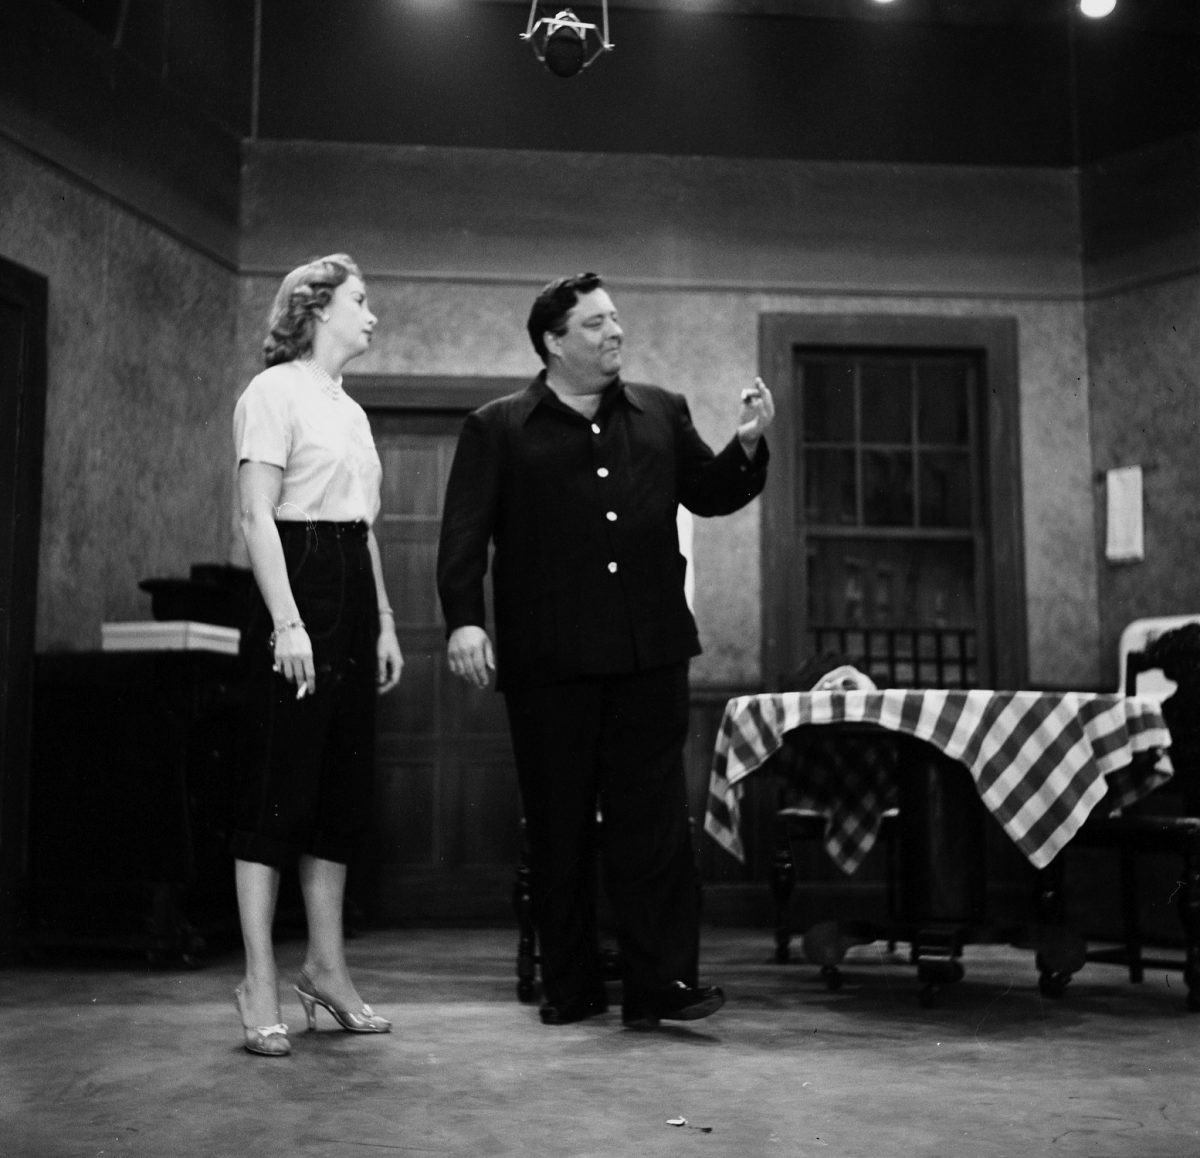 Audrey Meadows and Jackie Gleason appear on stage together